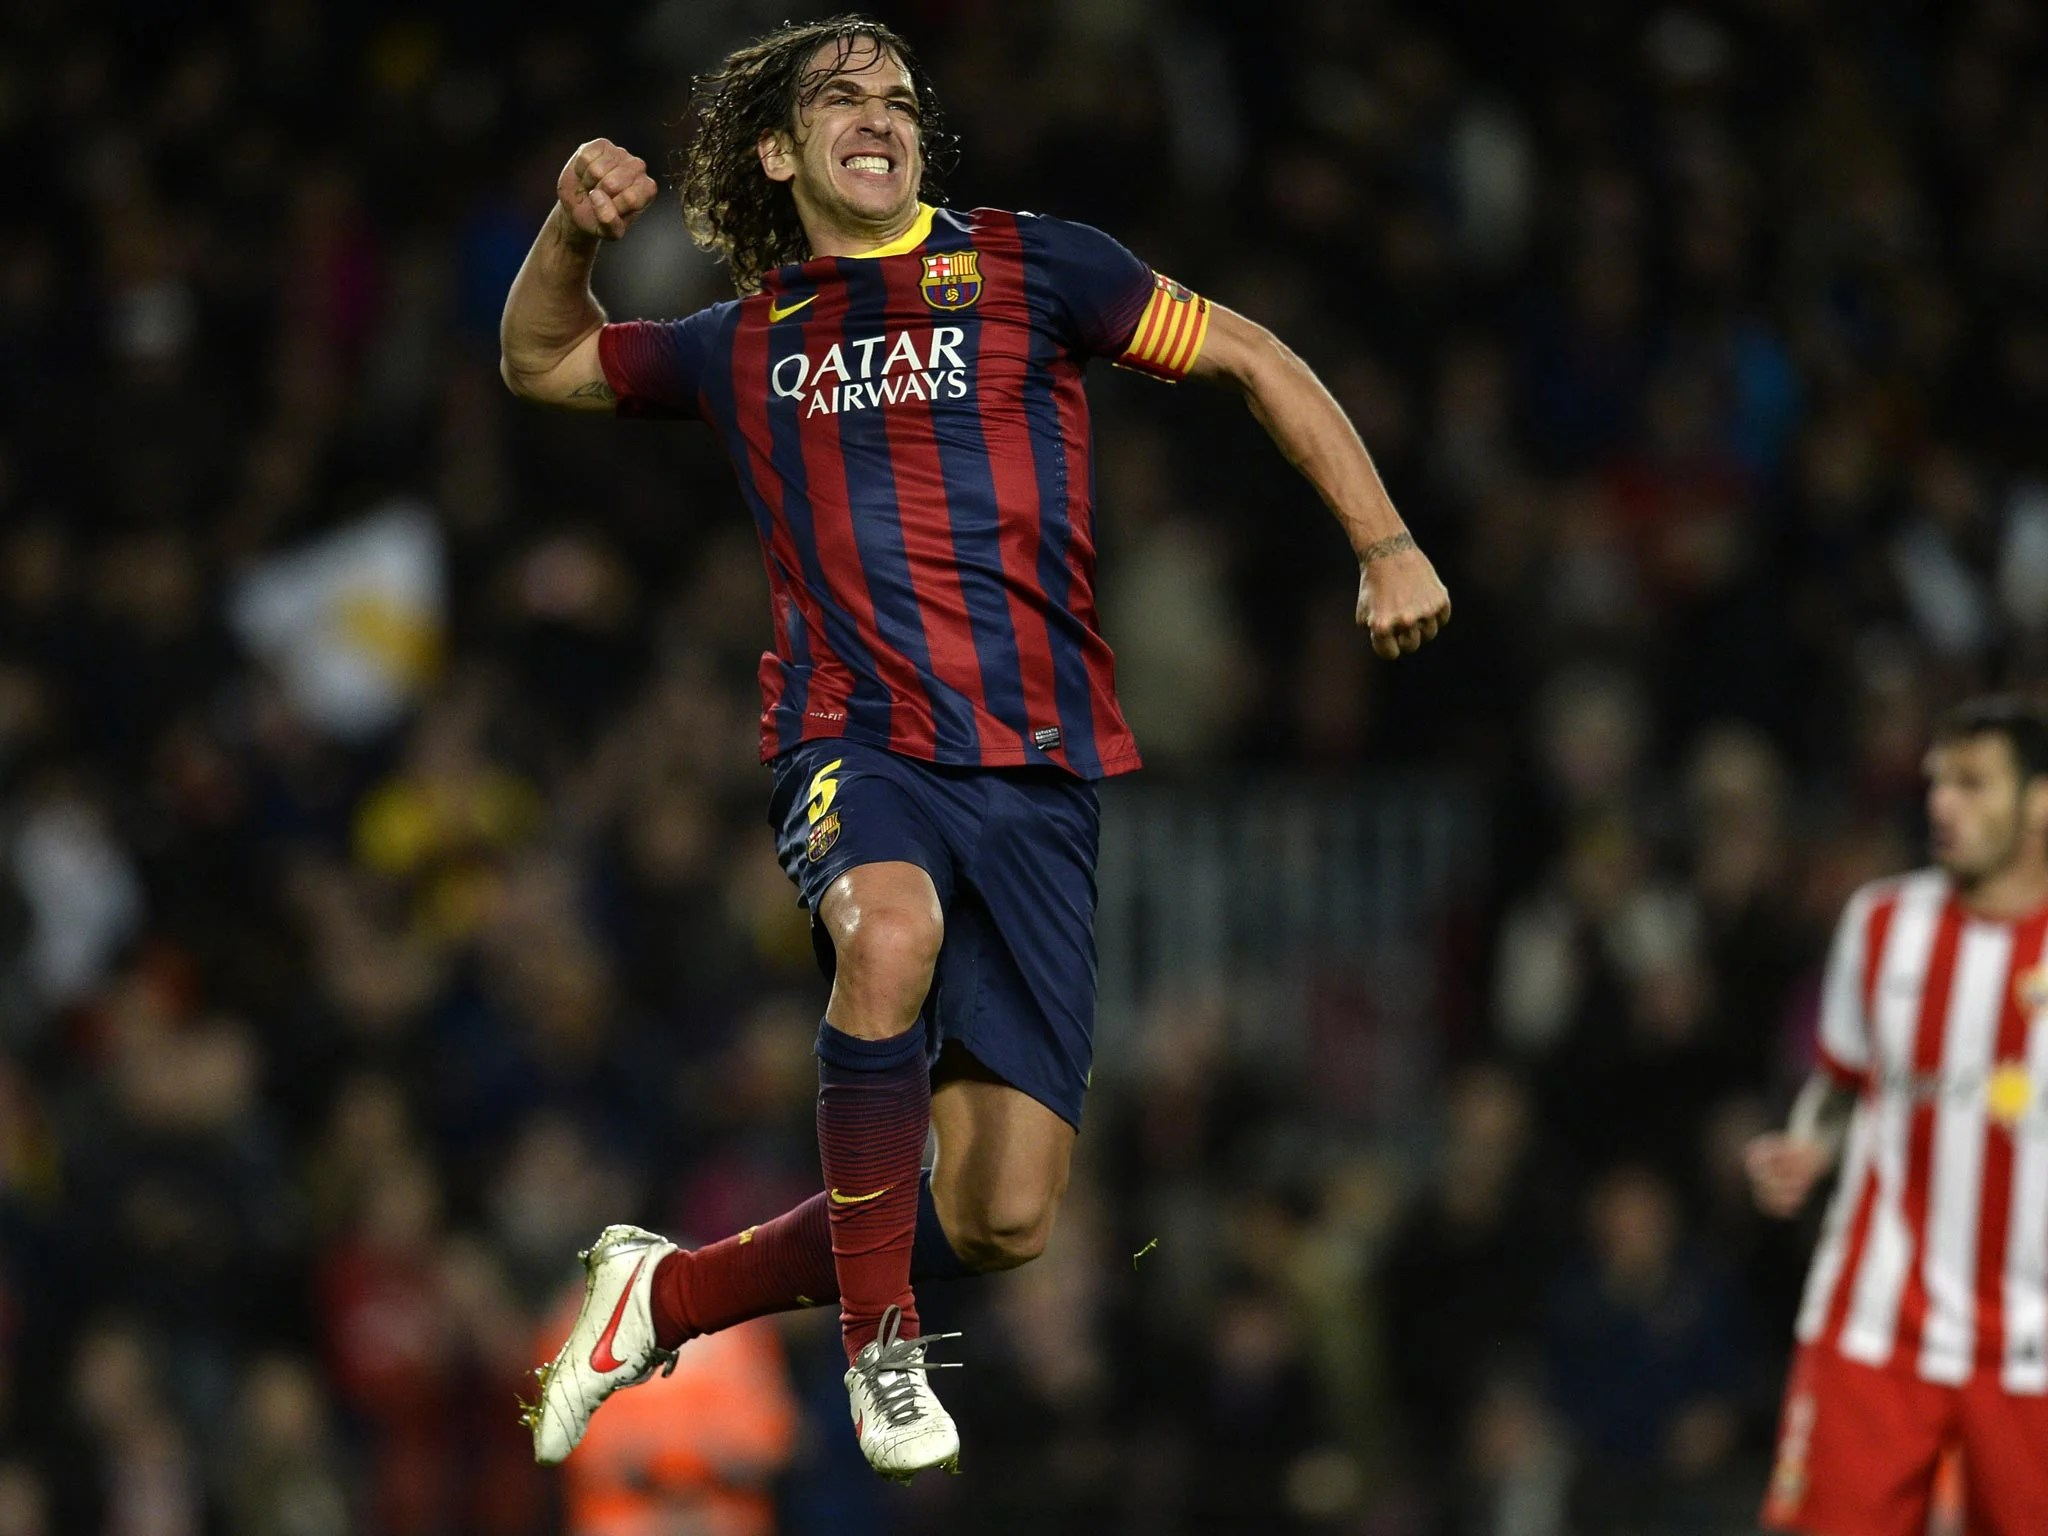 Wwe Logo Hd Wallpaper Carles Puyol The Raggy Haired Barcelona Defender Who Even